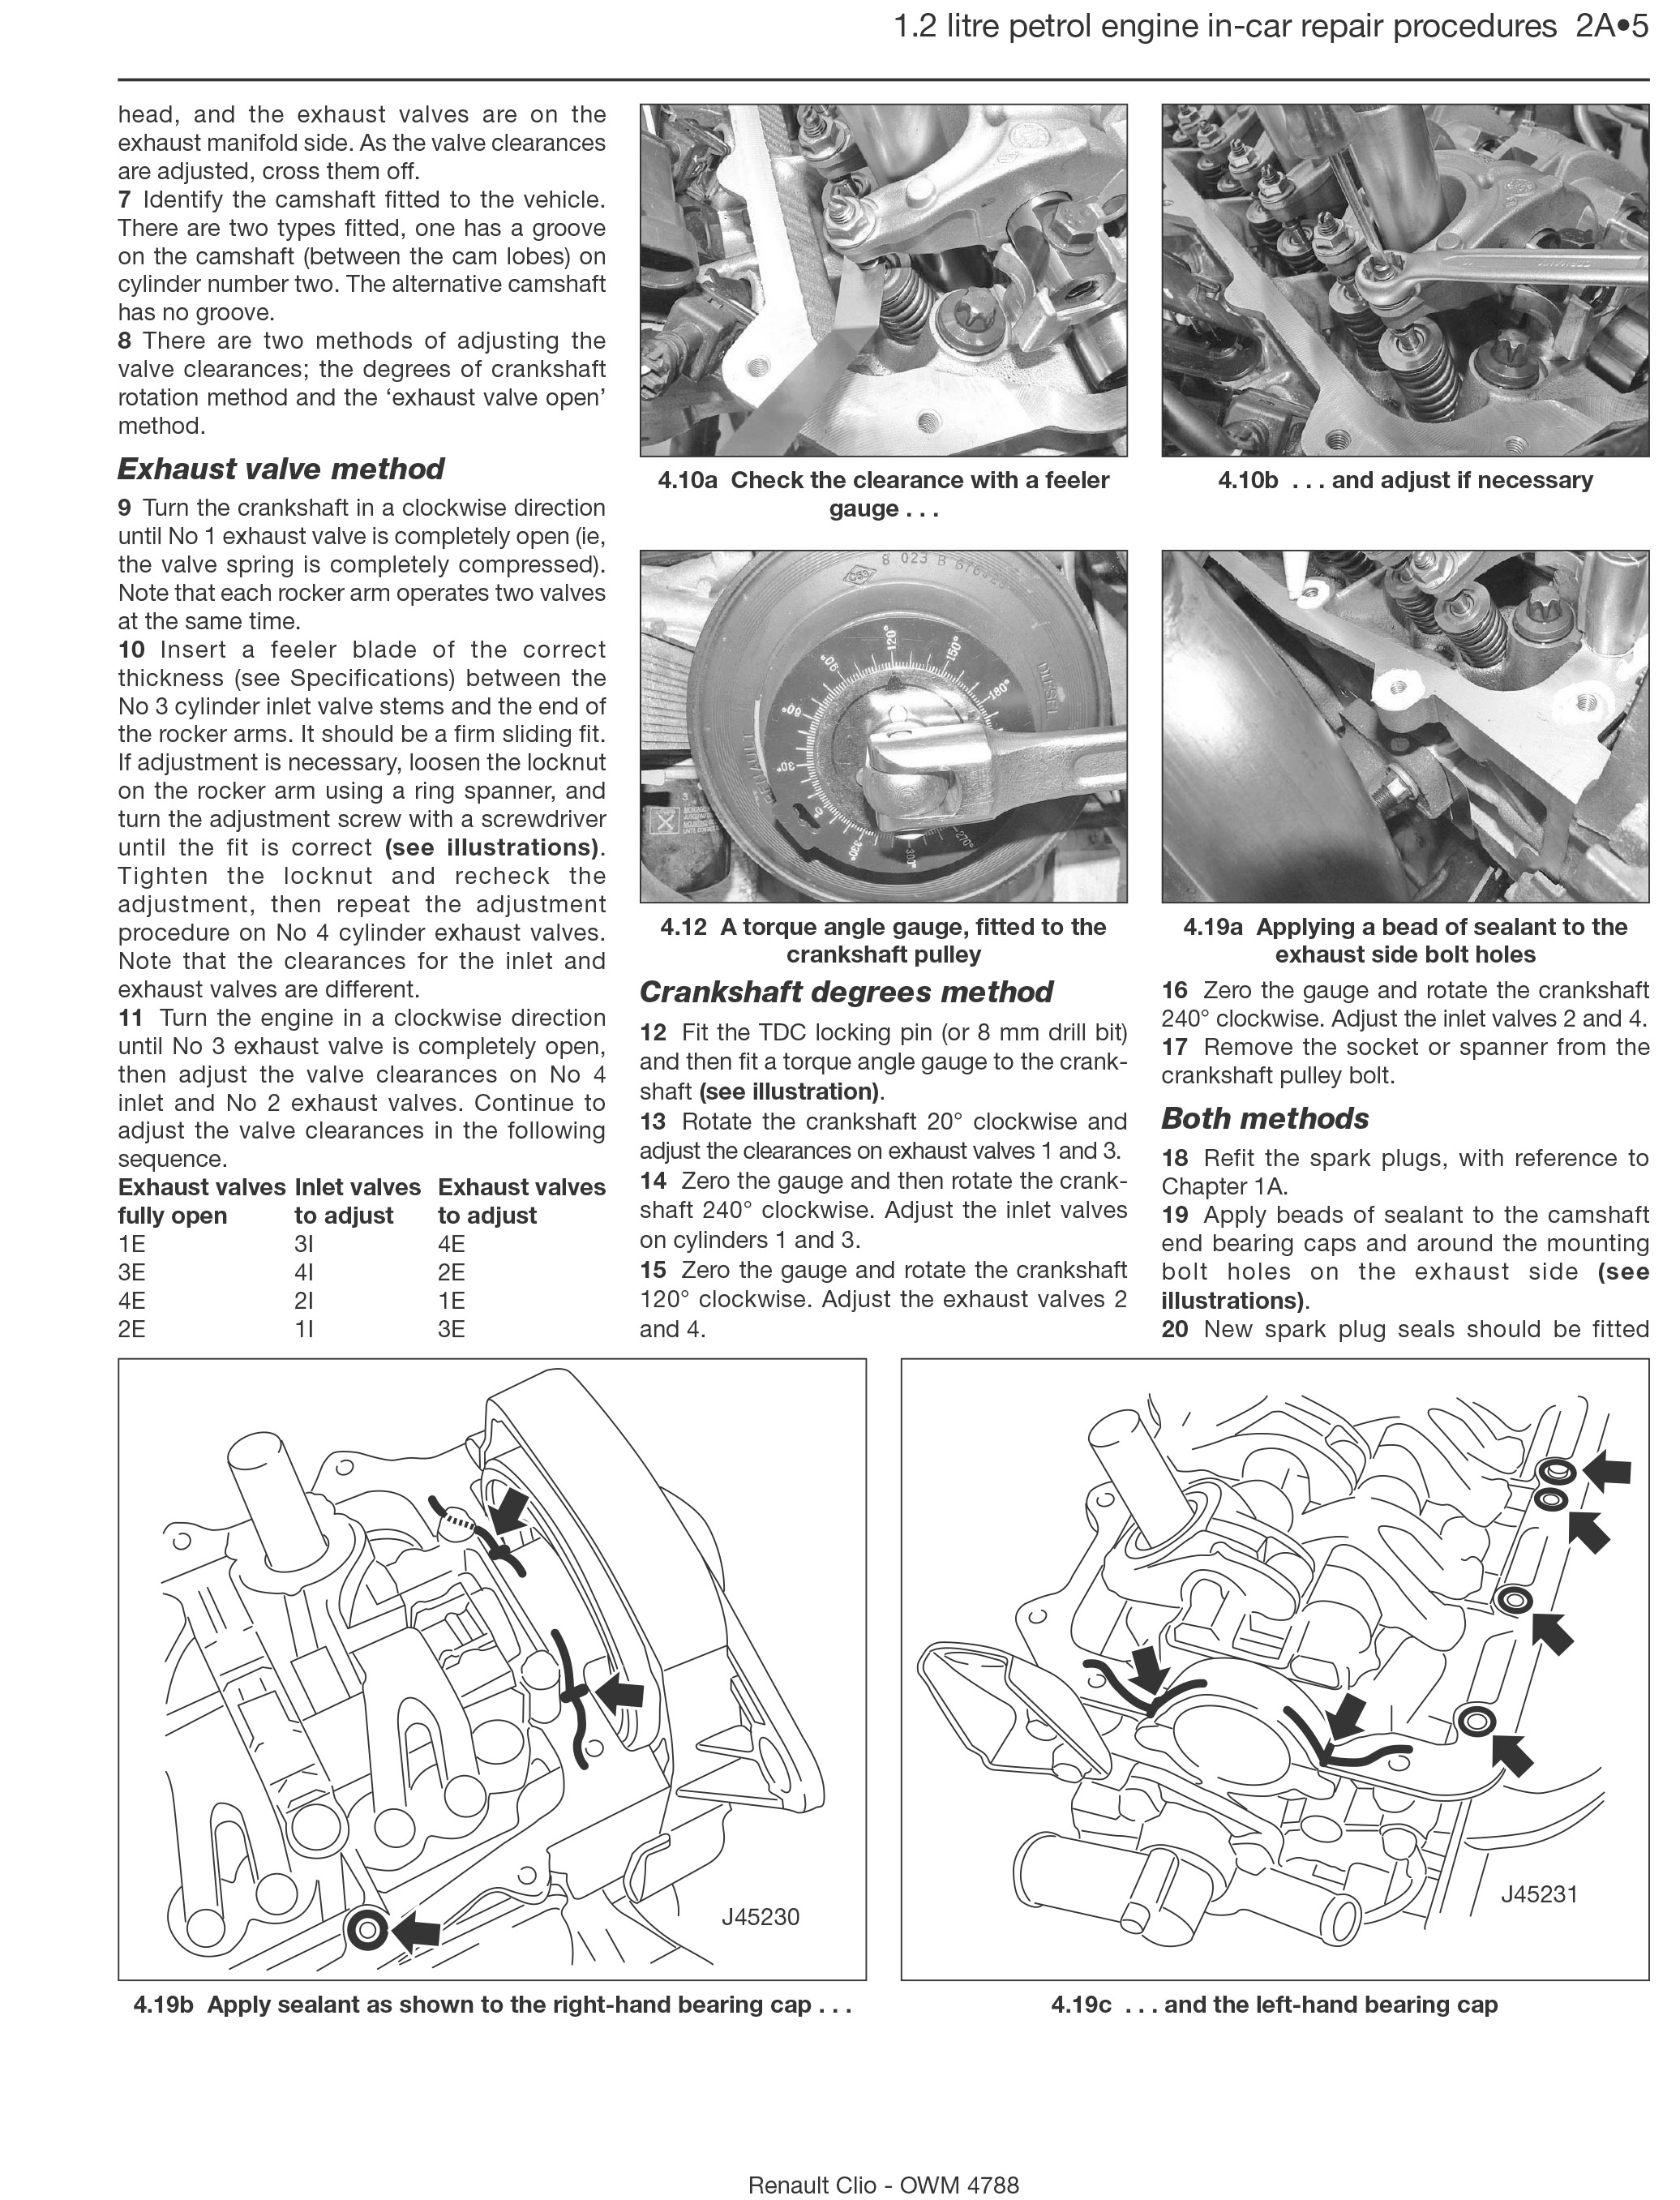 1986 mercury grand marquis wiring diagram  mercury  auto